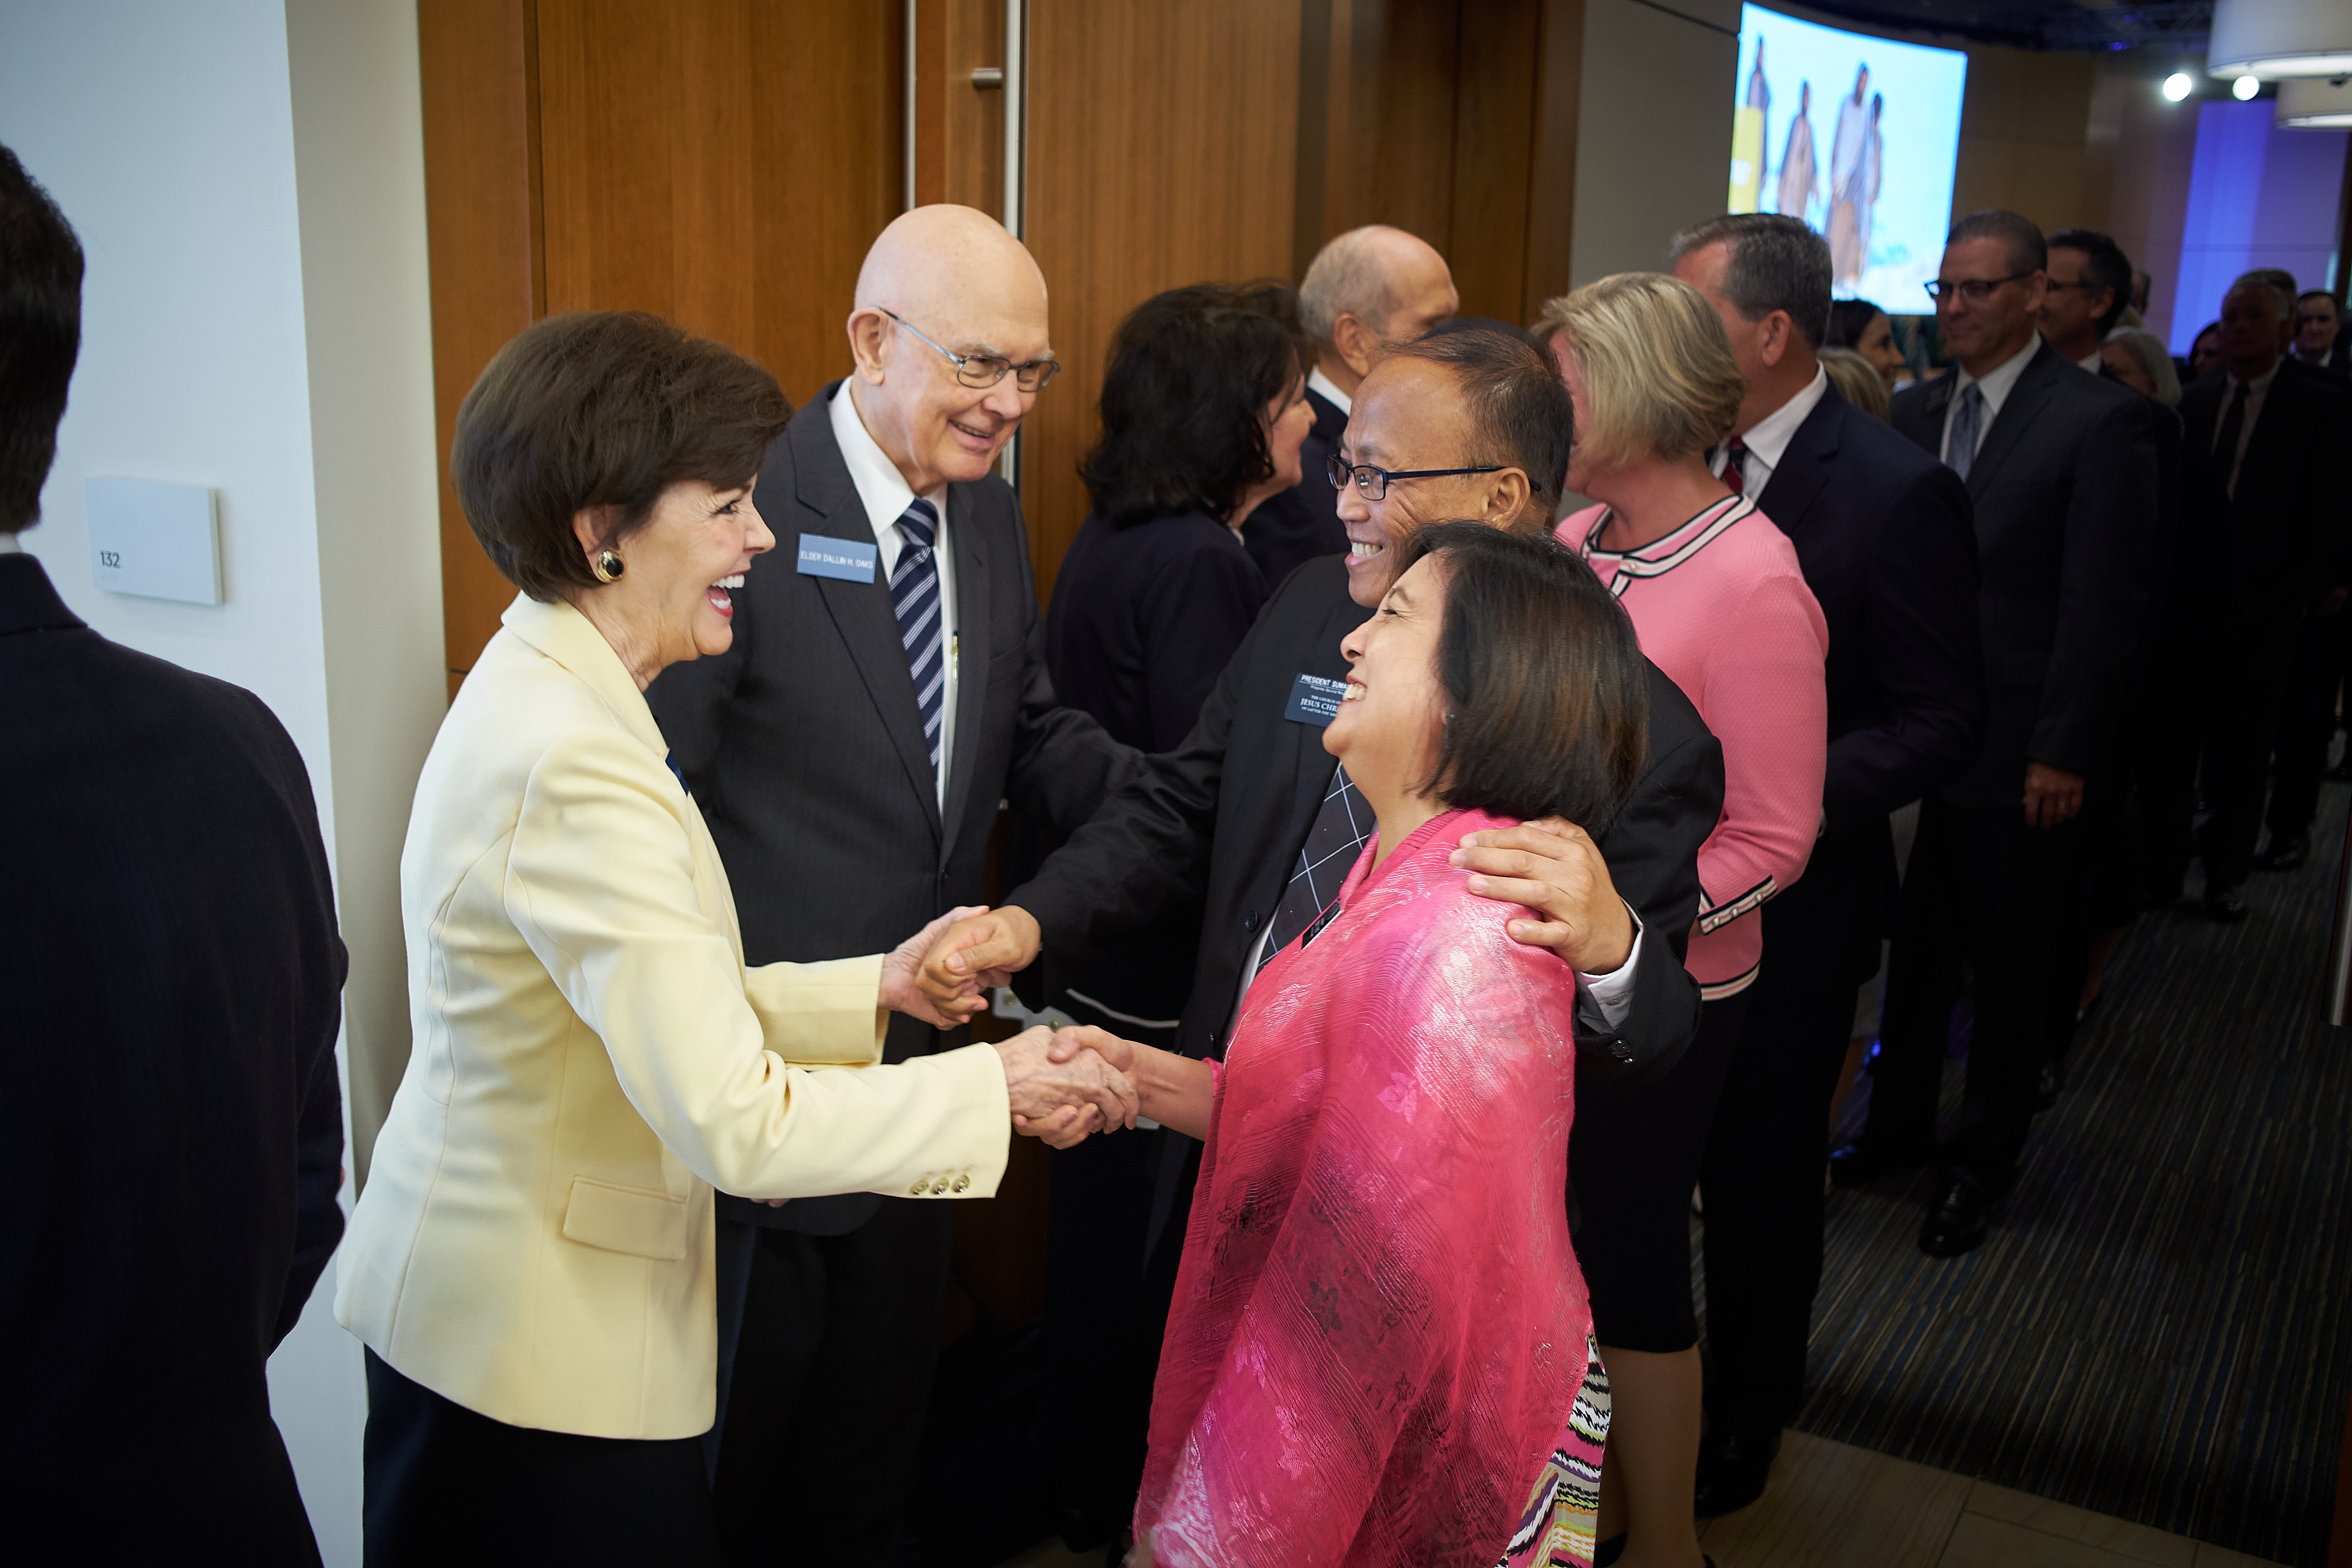 President Dallin H. Oaks of the First Presidency and his wife, Sister Kristen Oaks, greet new mission presidents and their wives during the Mission Leadership Seminar held in the Provo MTC June 24-26, 2019.